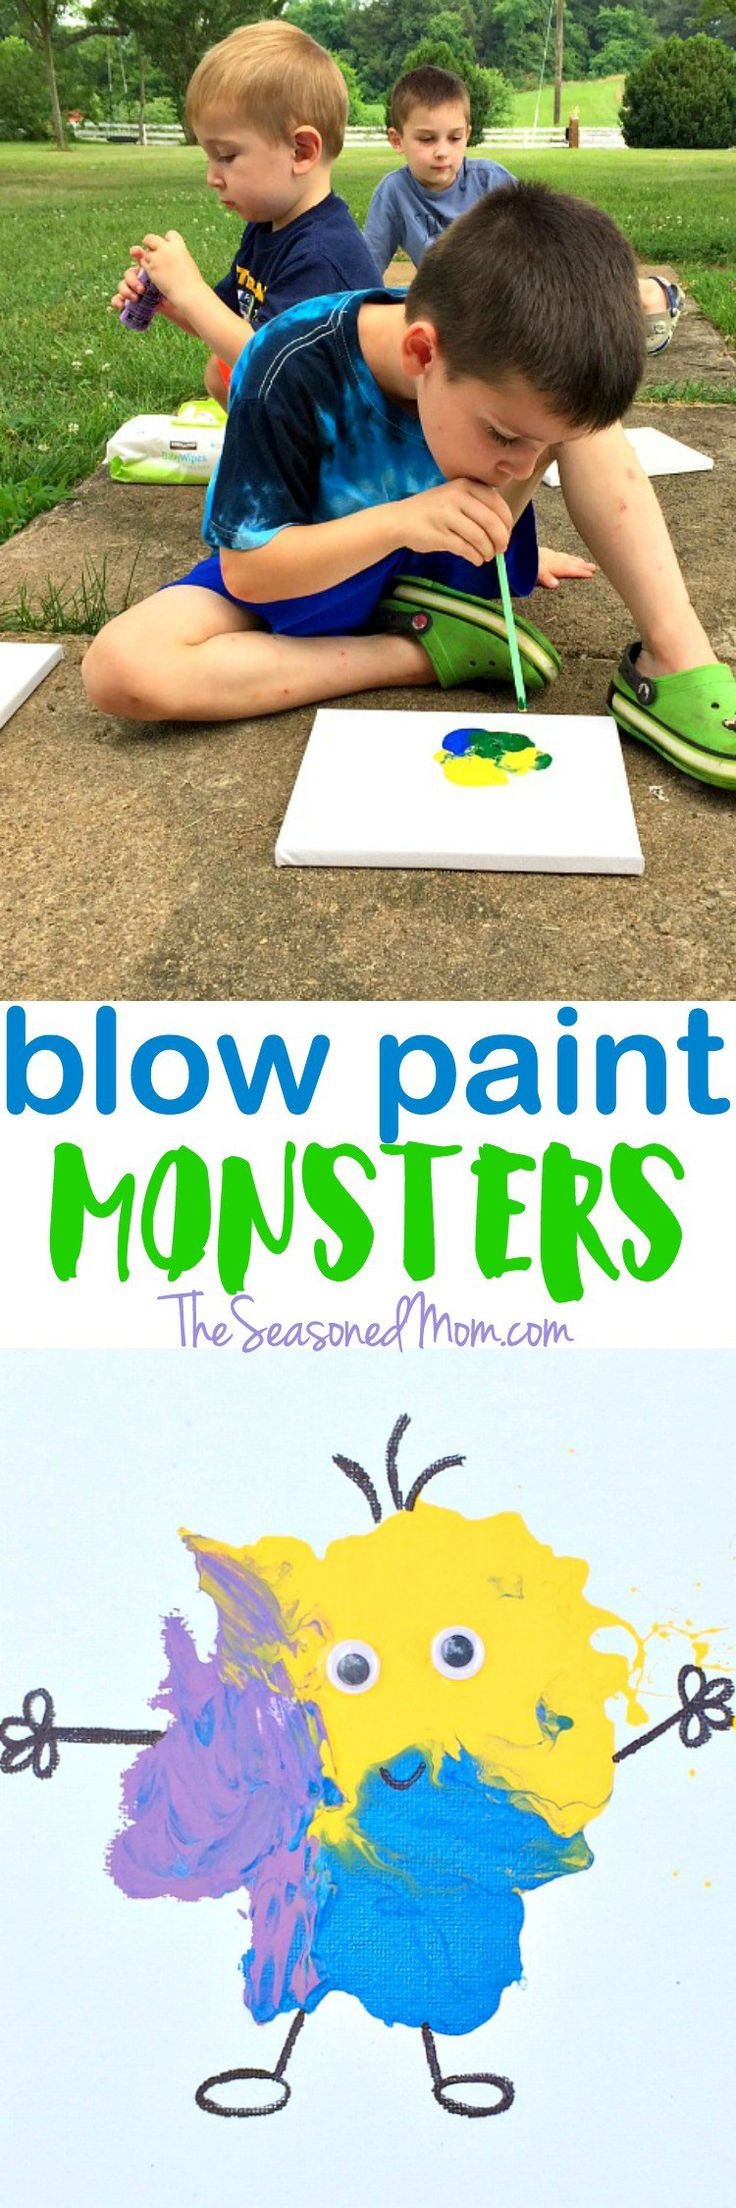 Let your kids' imaginations run wild with this Easy Art Activity for Kids: Blow Paint Monsters!